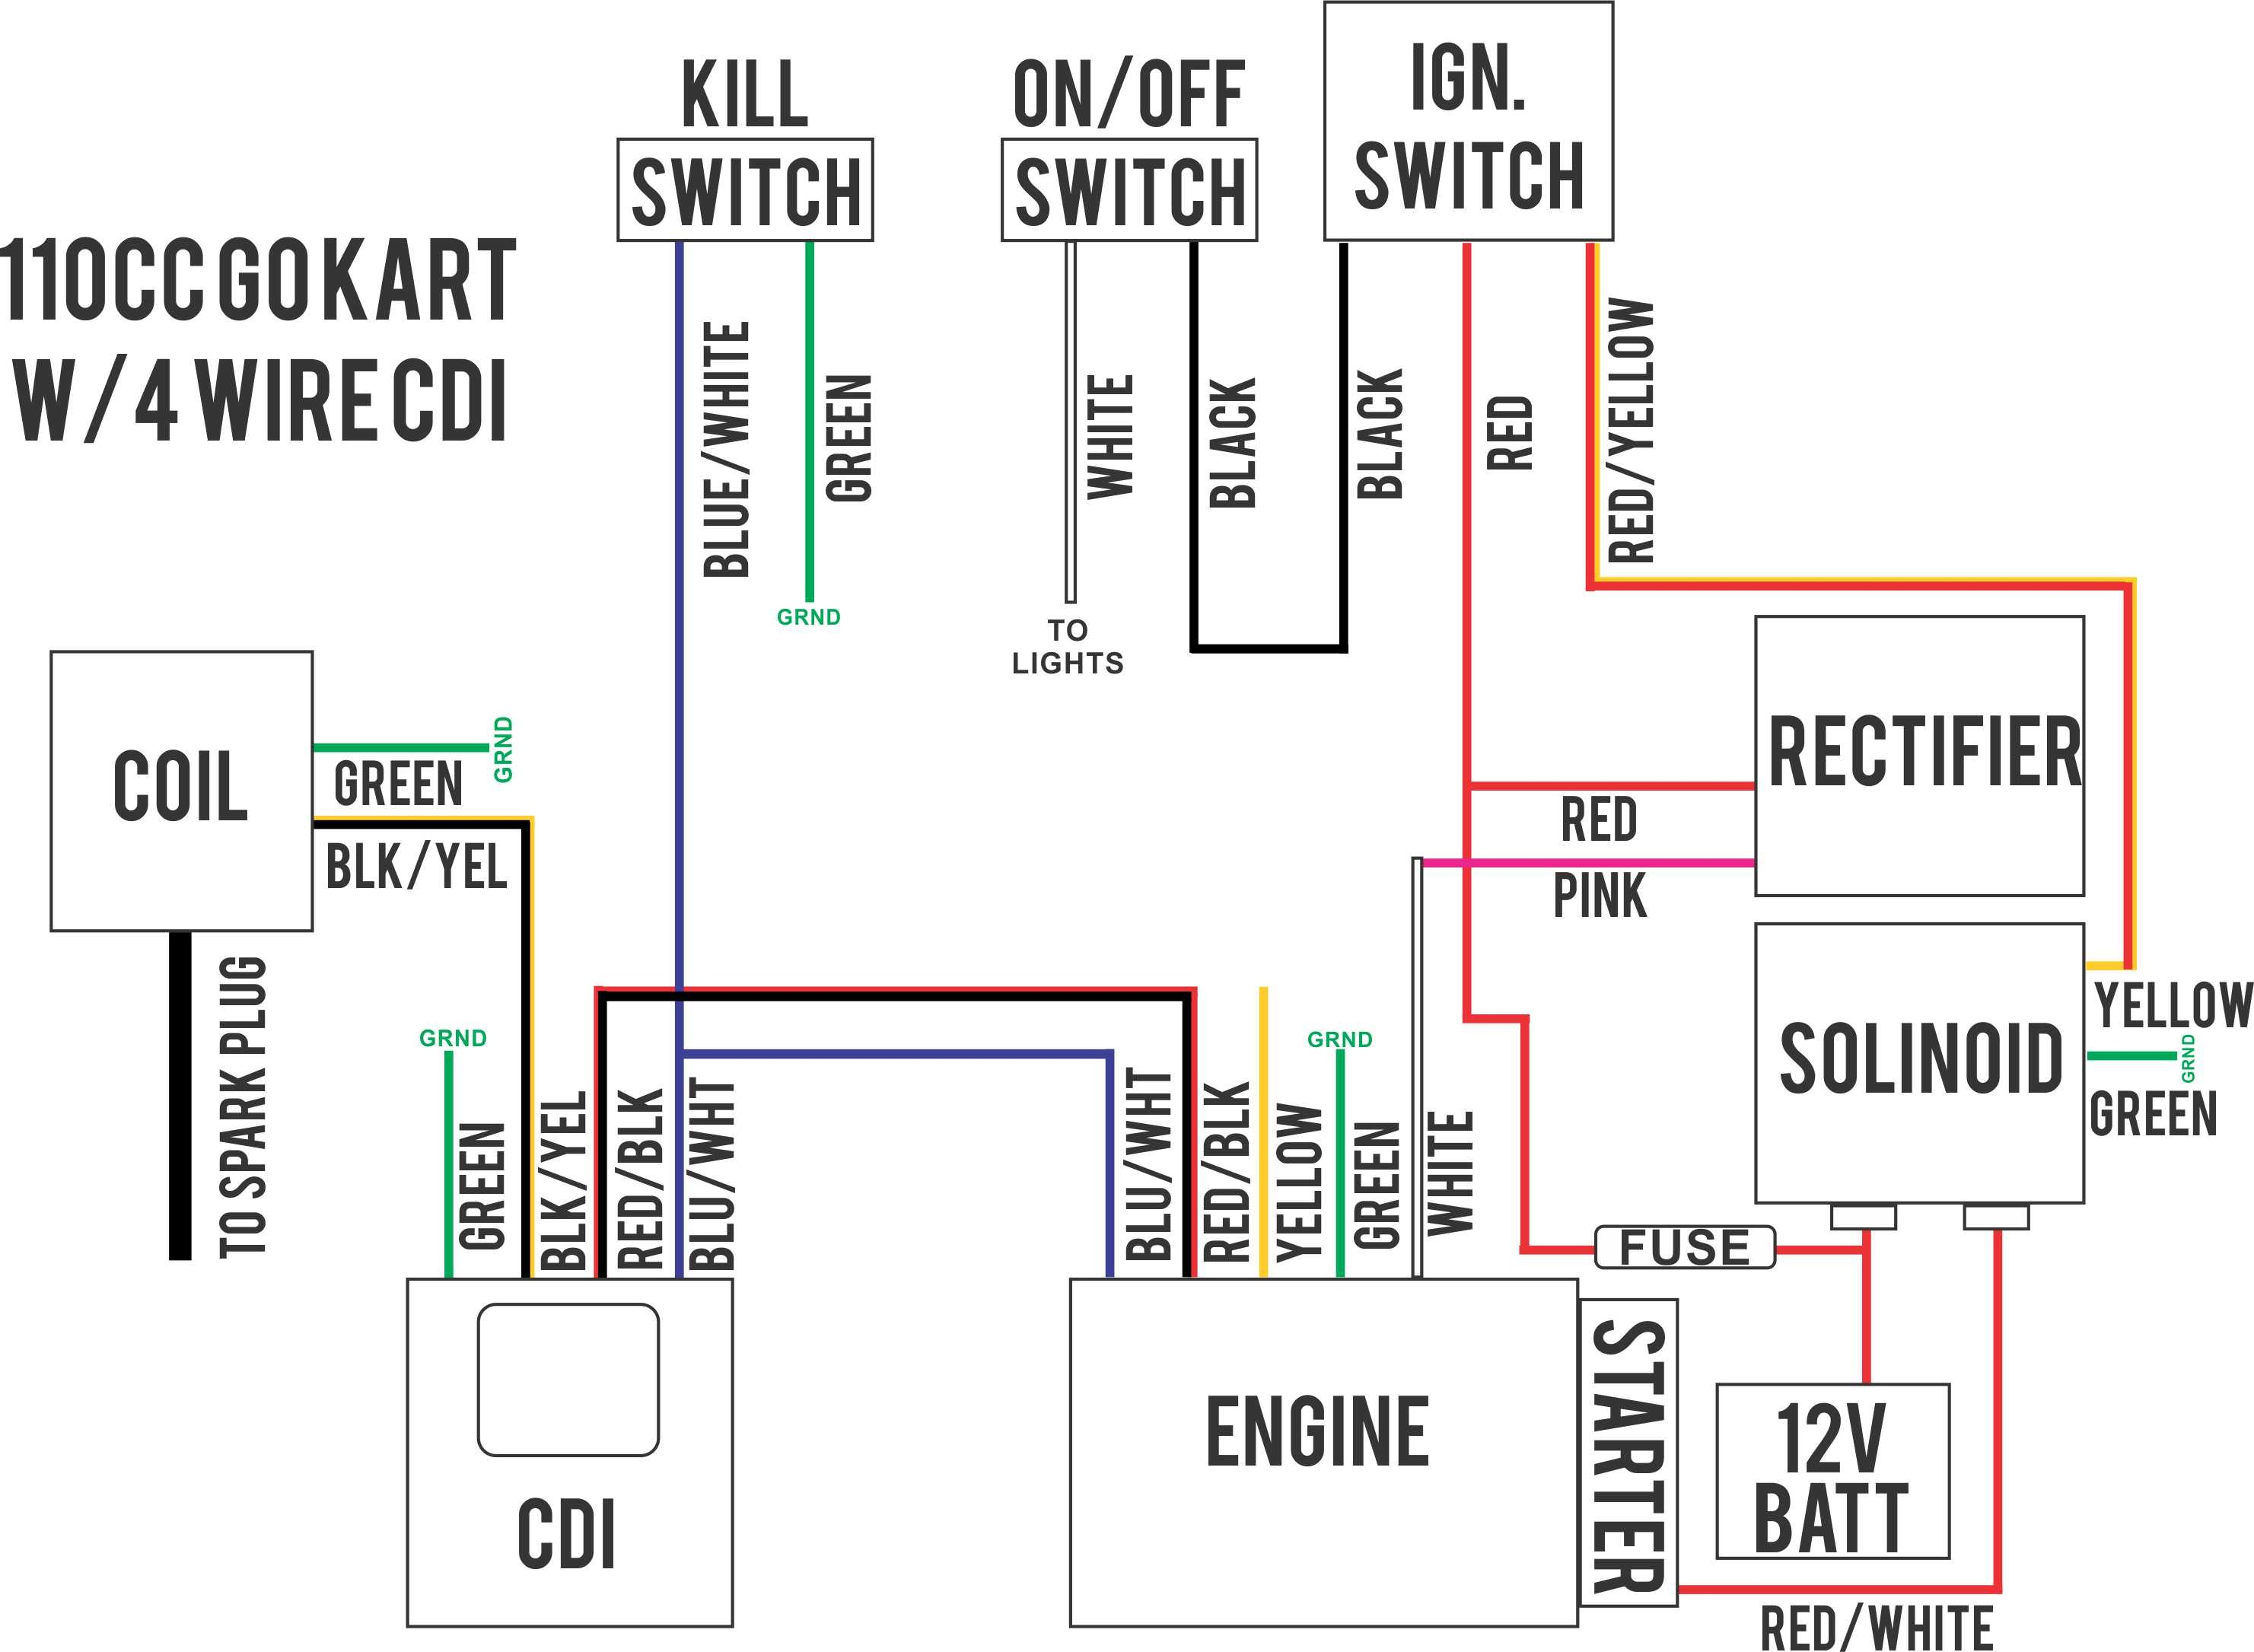 pit bike wiring diagram electric start Collection-famous pit bike wiring diagram inspiration best images for wiring rh oursweetbakeshop info 9-i